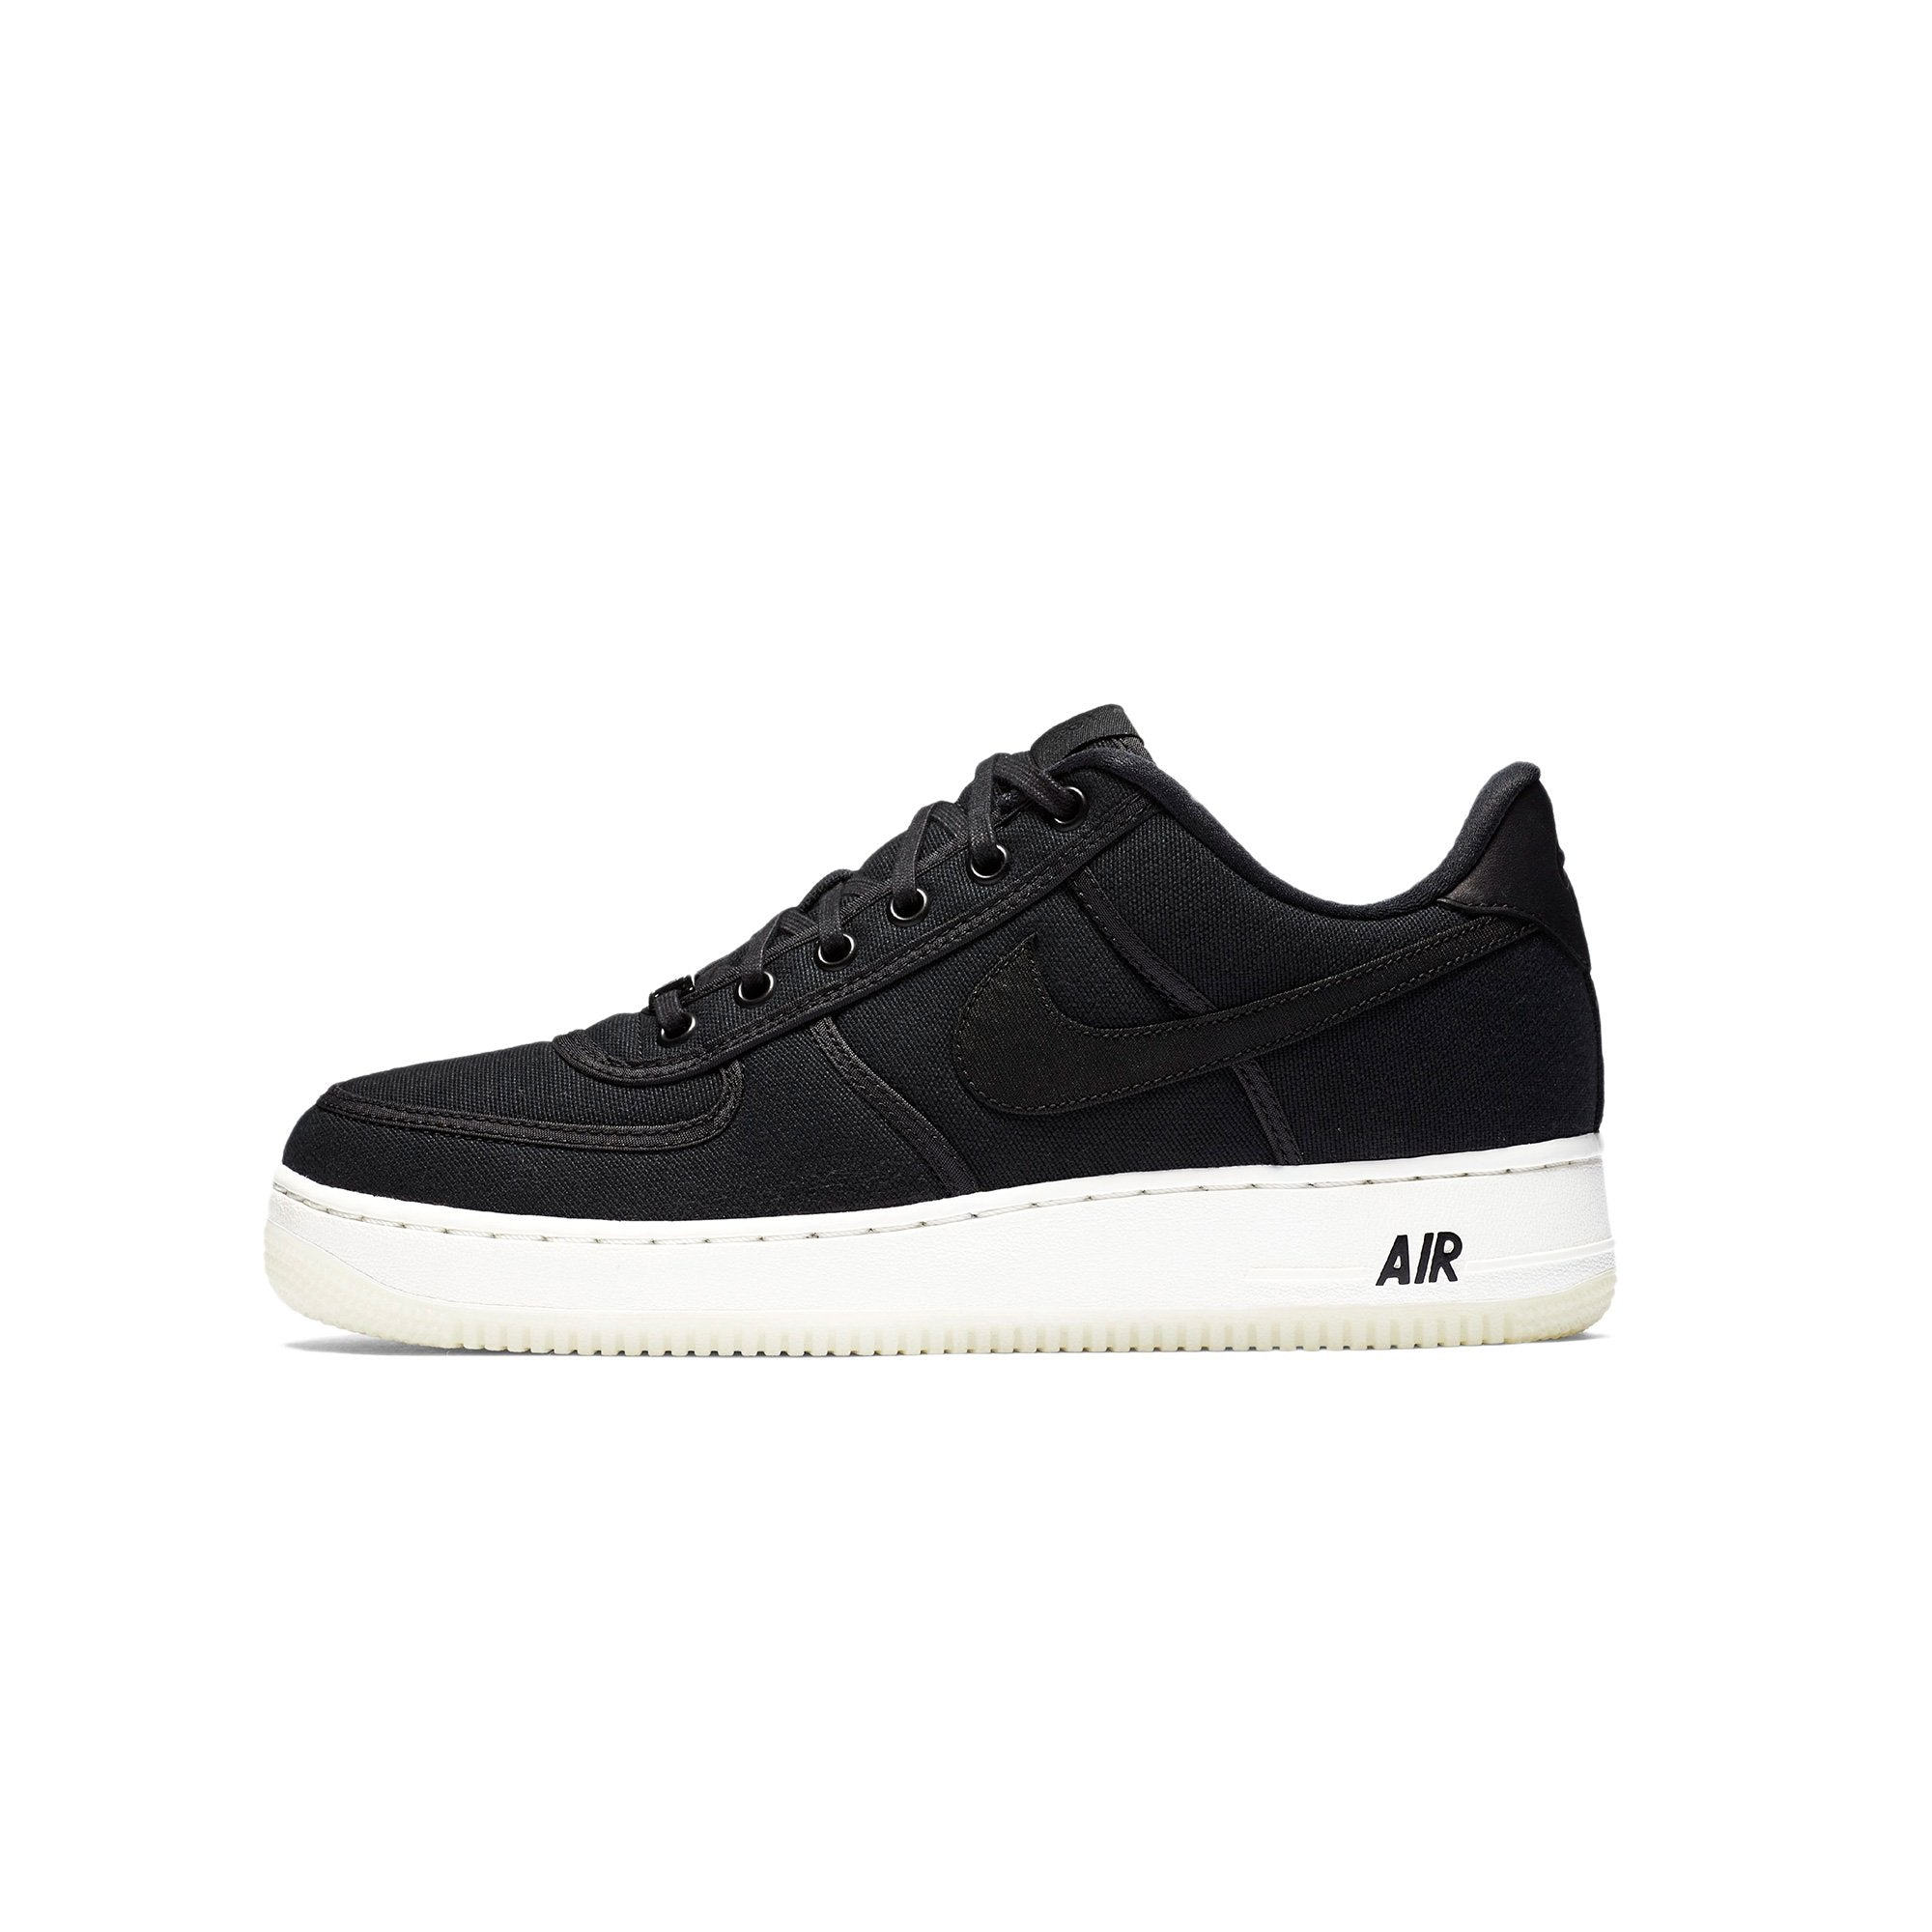 5e5c40127fd Details about Mens Nike Air Force 1 Low Retro QS Canvas Black Summit White  AH1067-004